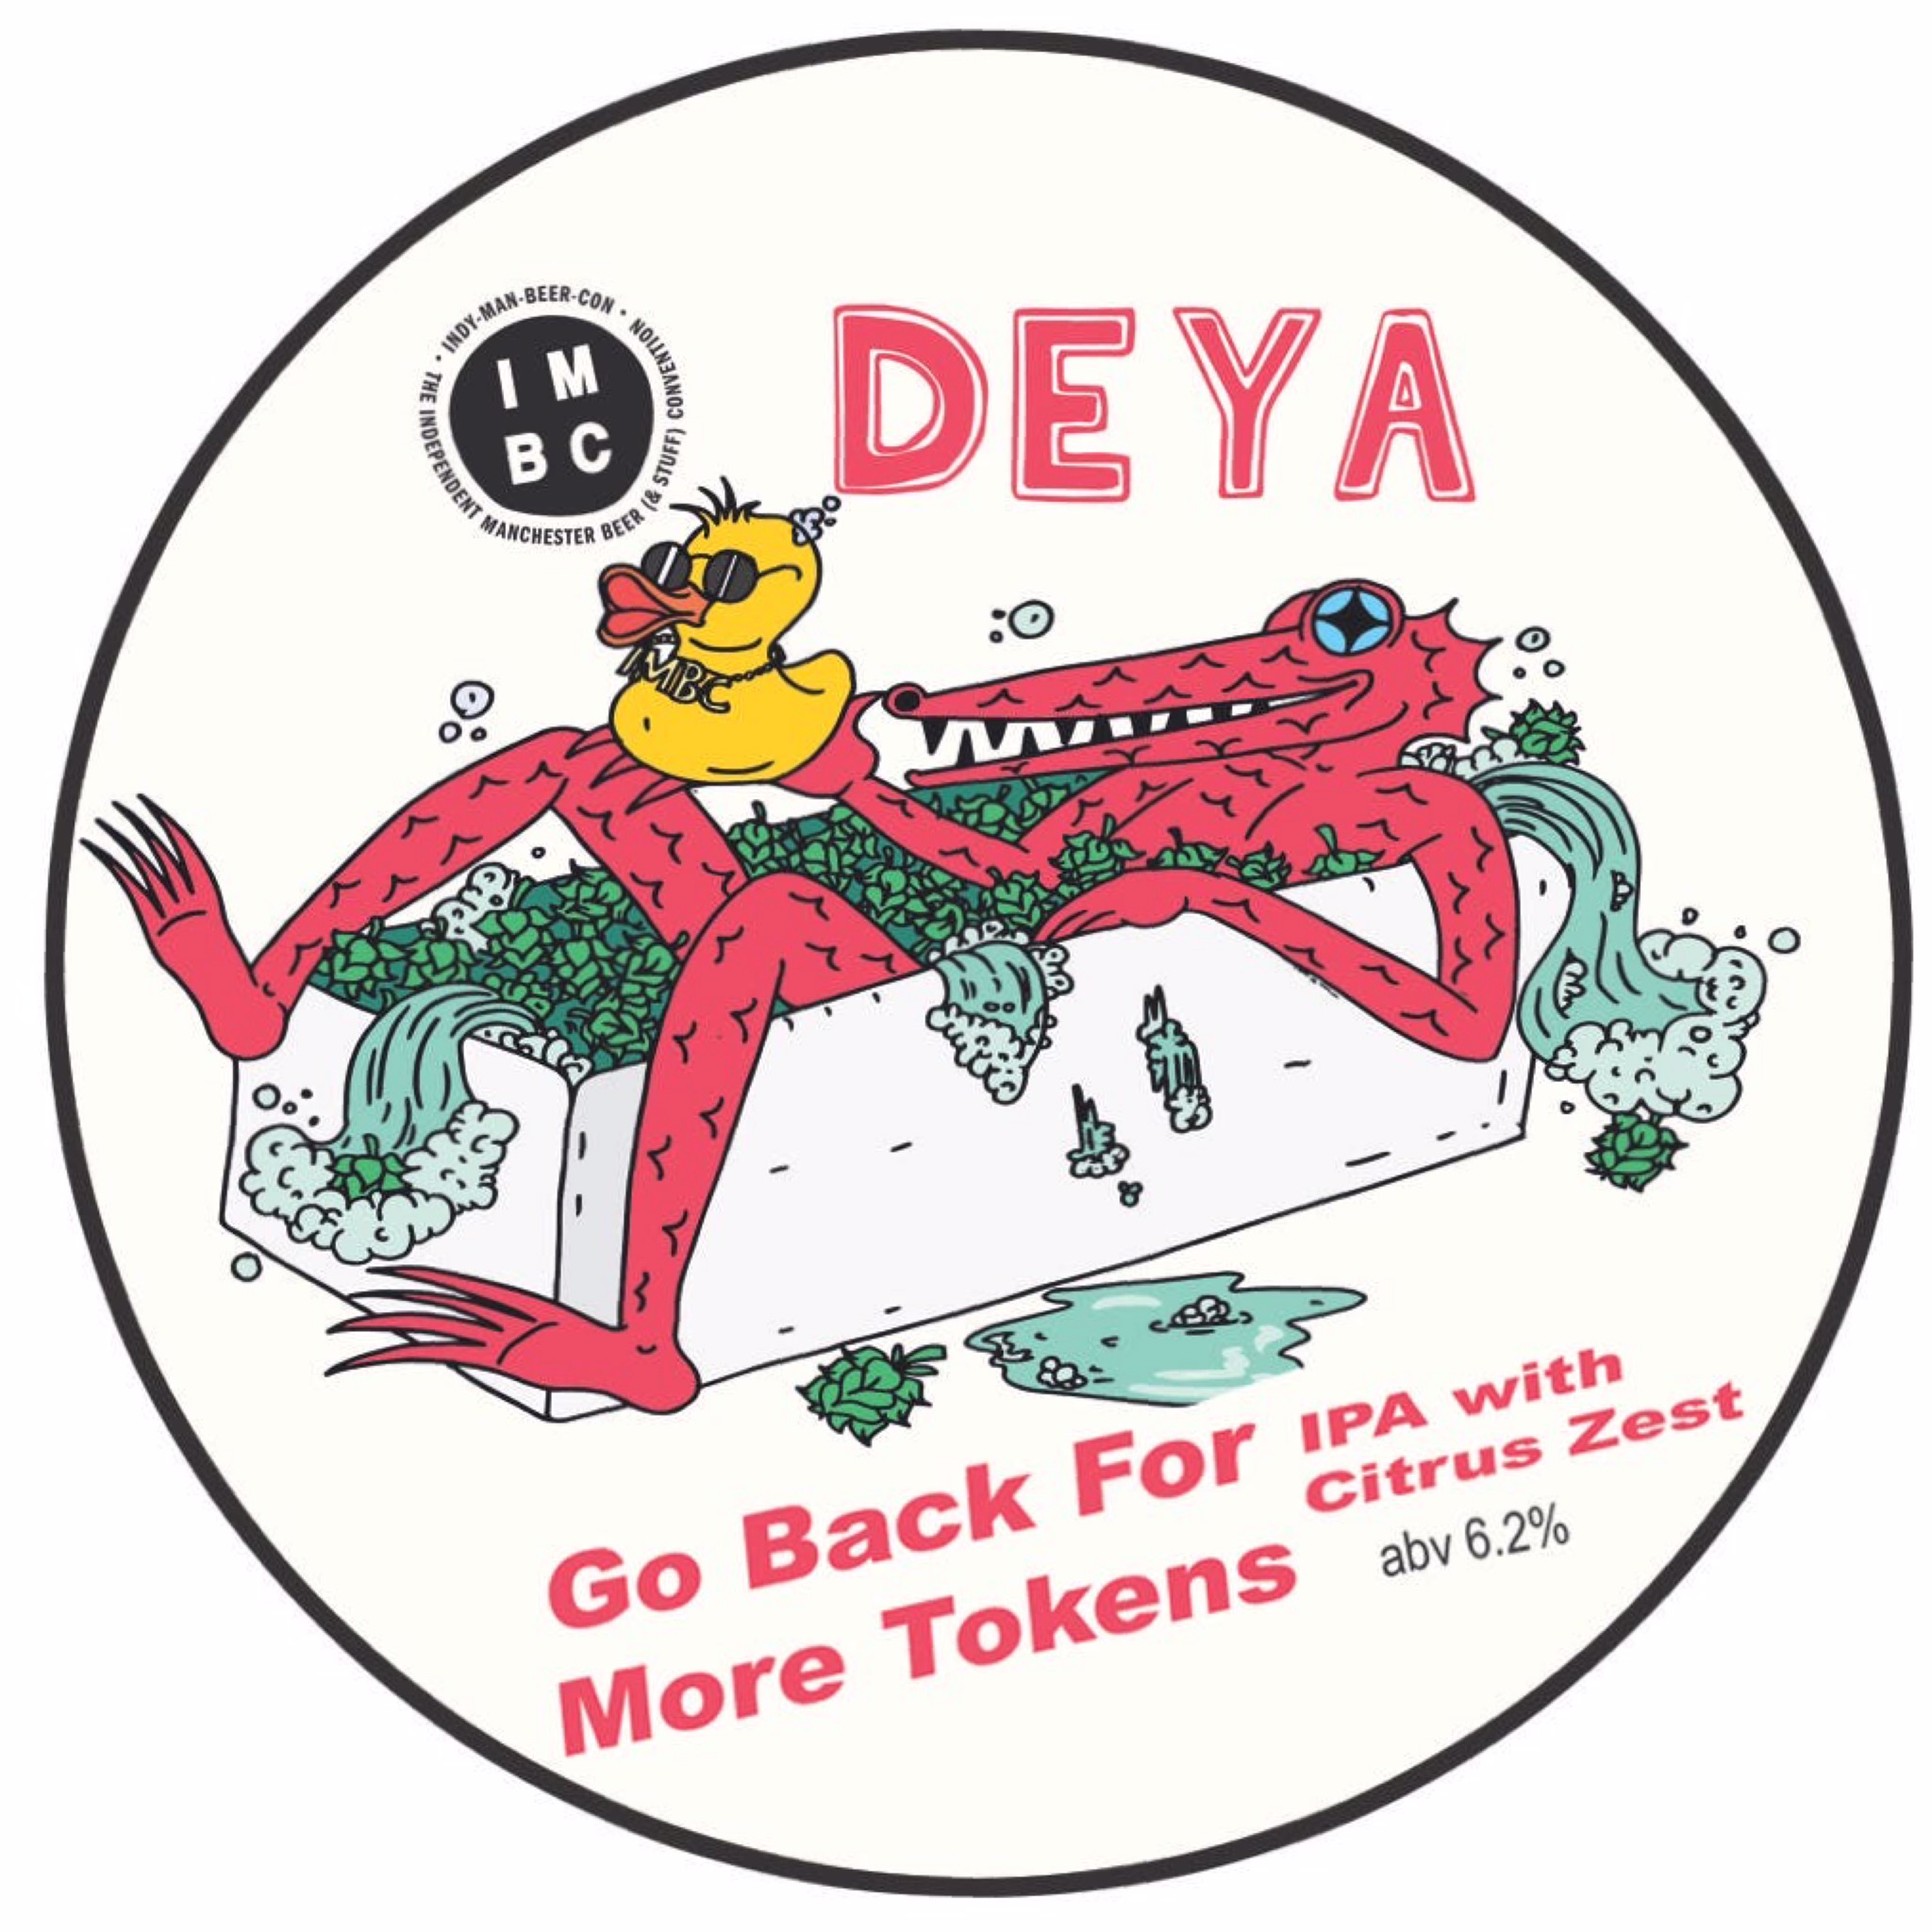 Go Back For More Tokens IPA 6.2% 500ml Deya Brewing